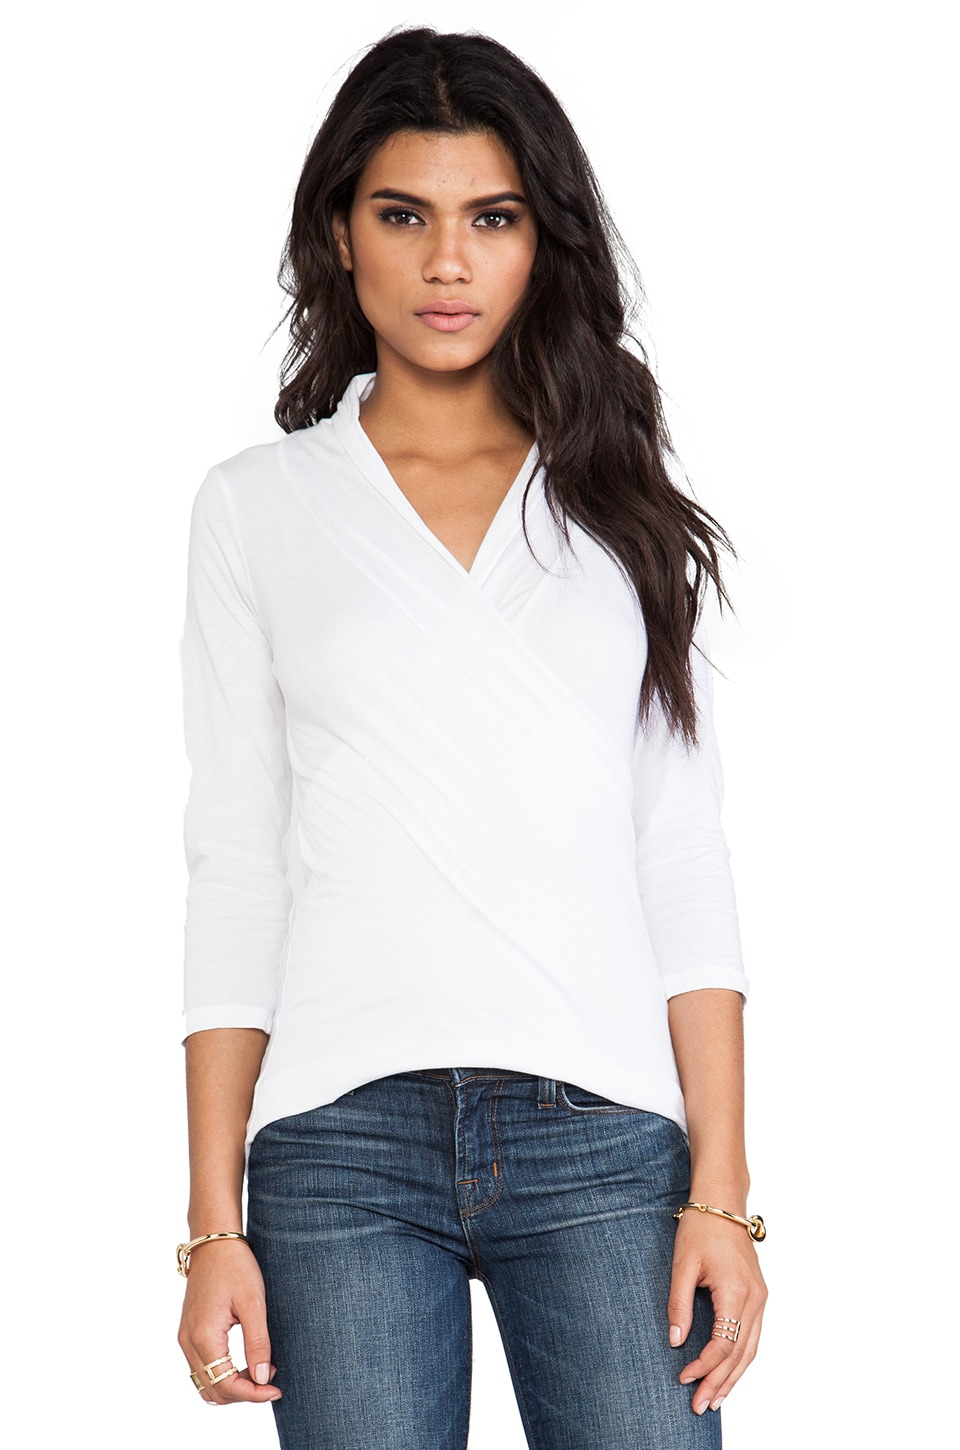 Velvet by Graham & Spencer Adora Whisper Classic Top in White